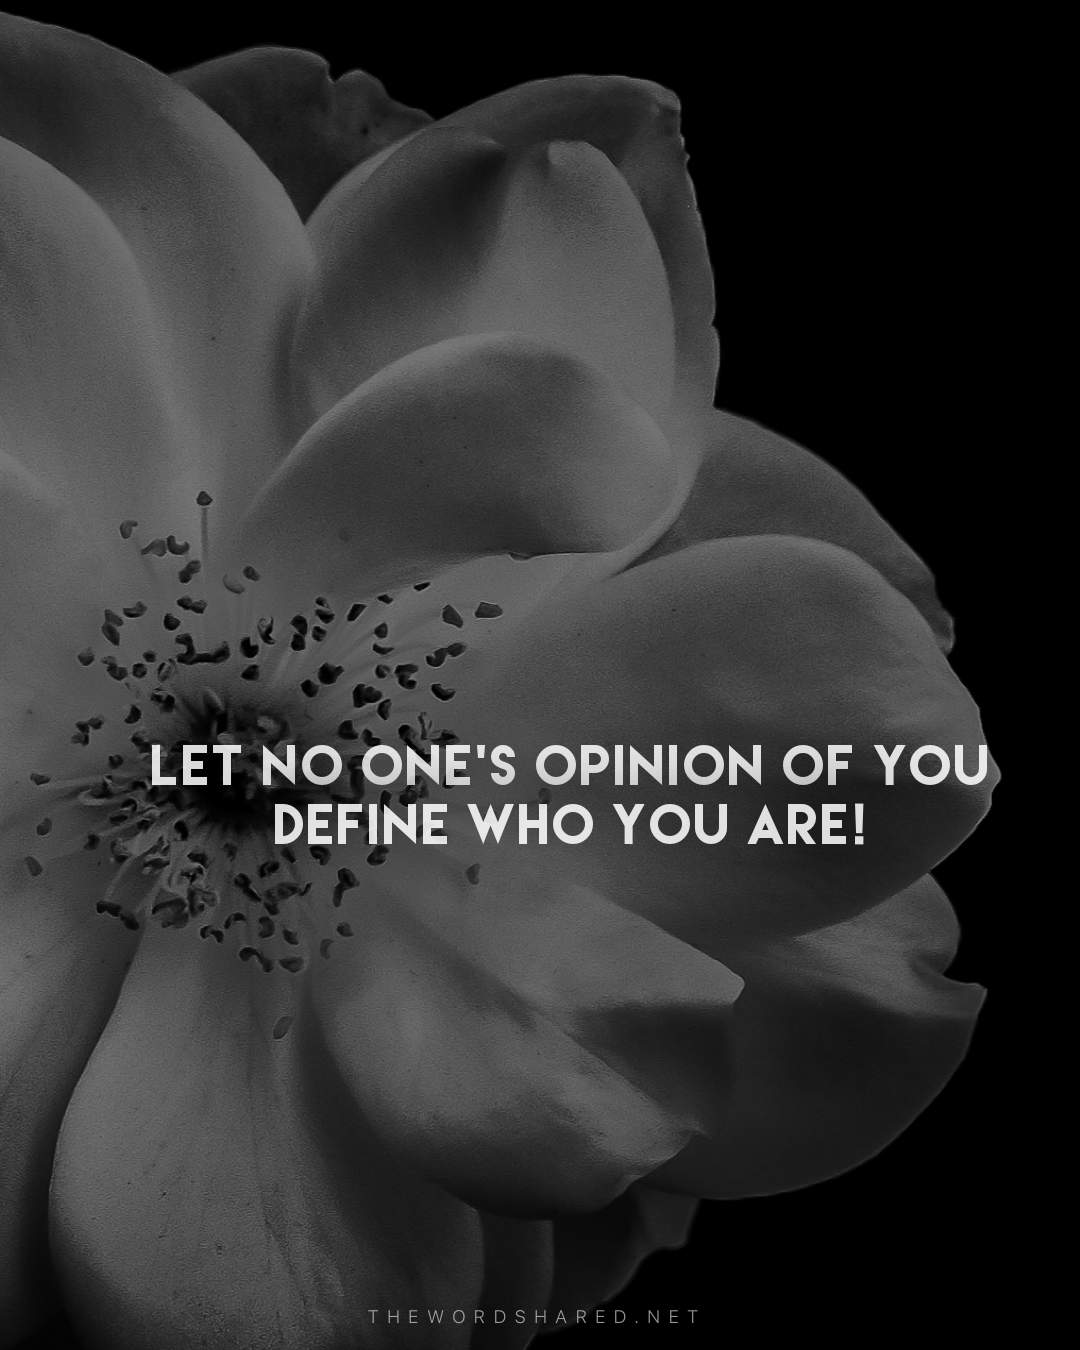 Let no ones opinion of you define who you are